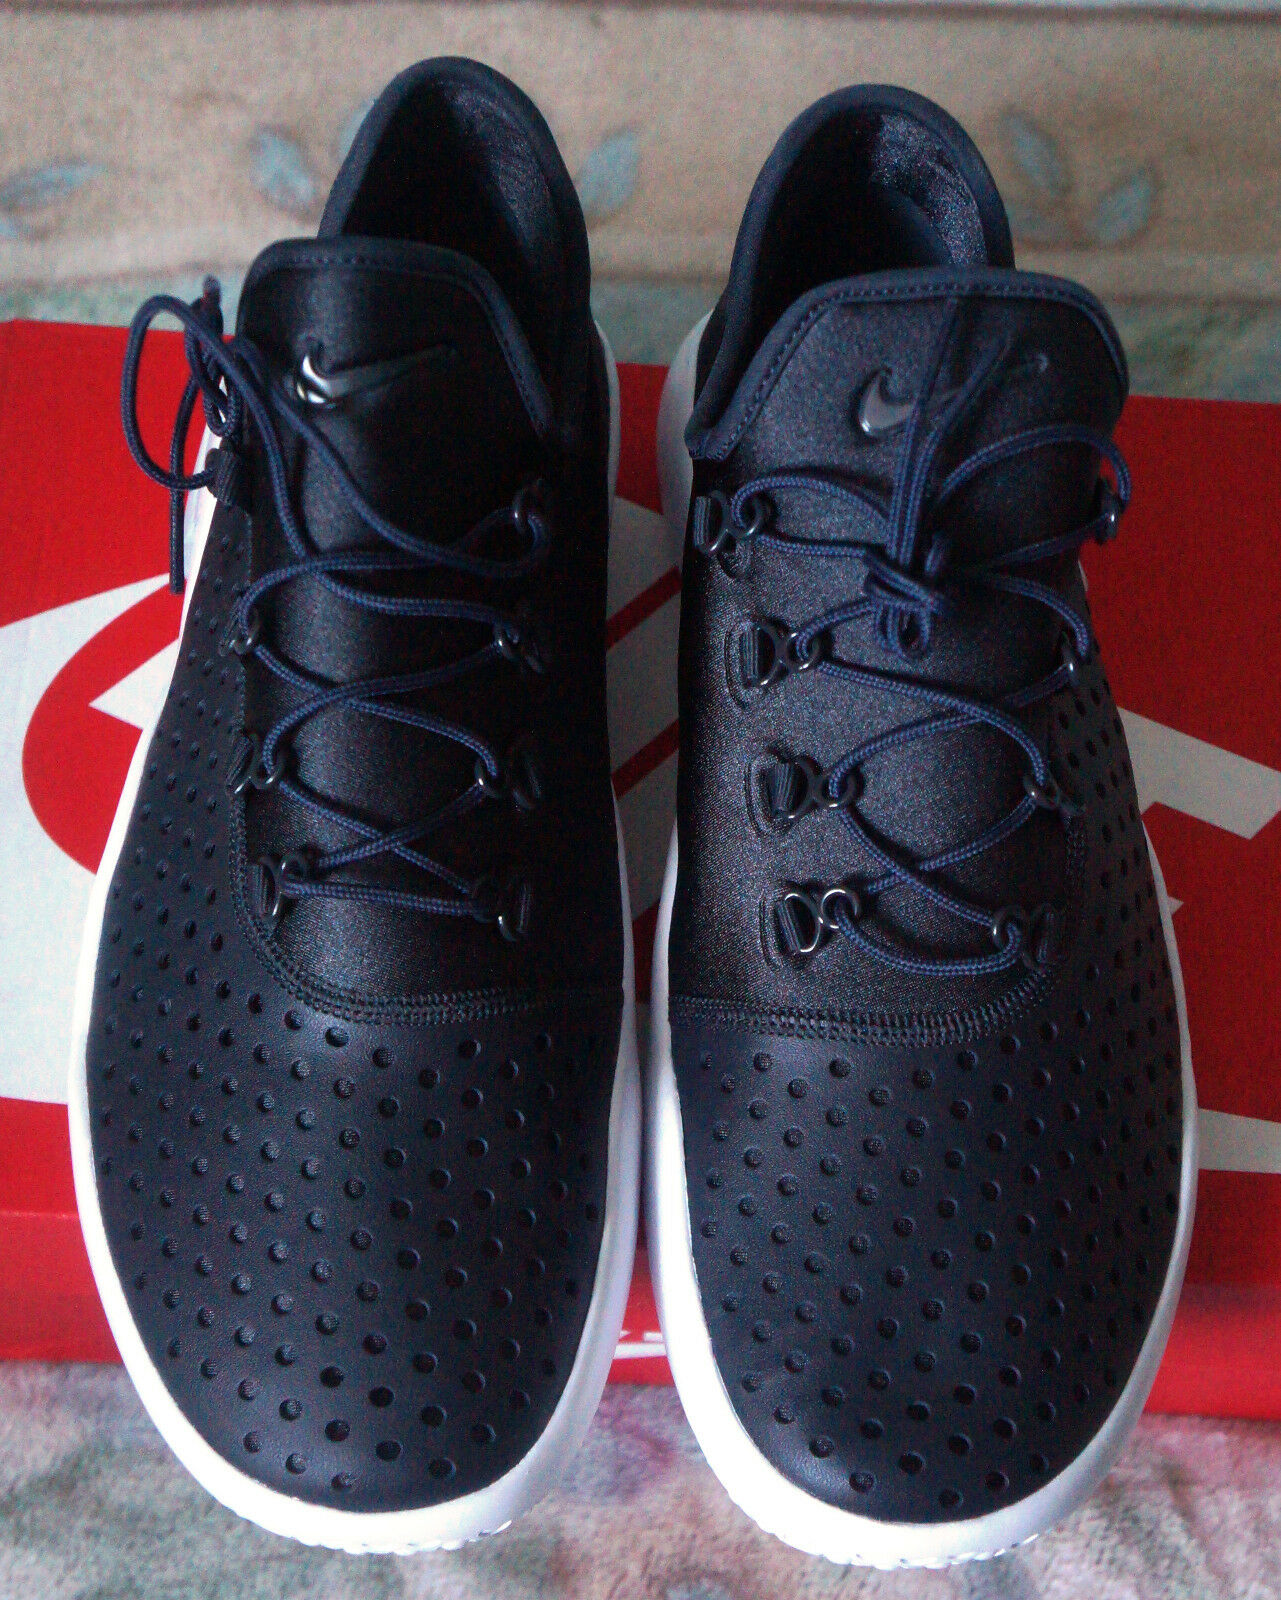 reputable site 03f83 4b996 ... Brand New Nike FL-RUE Mens Mens Mens Running Trainers in  Black Anthracite Size ...